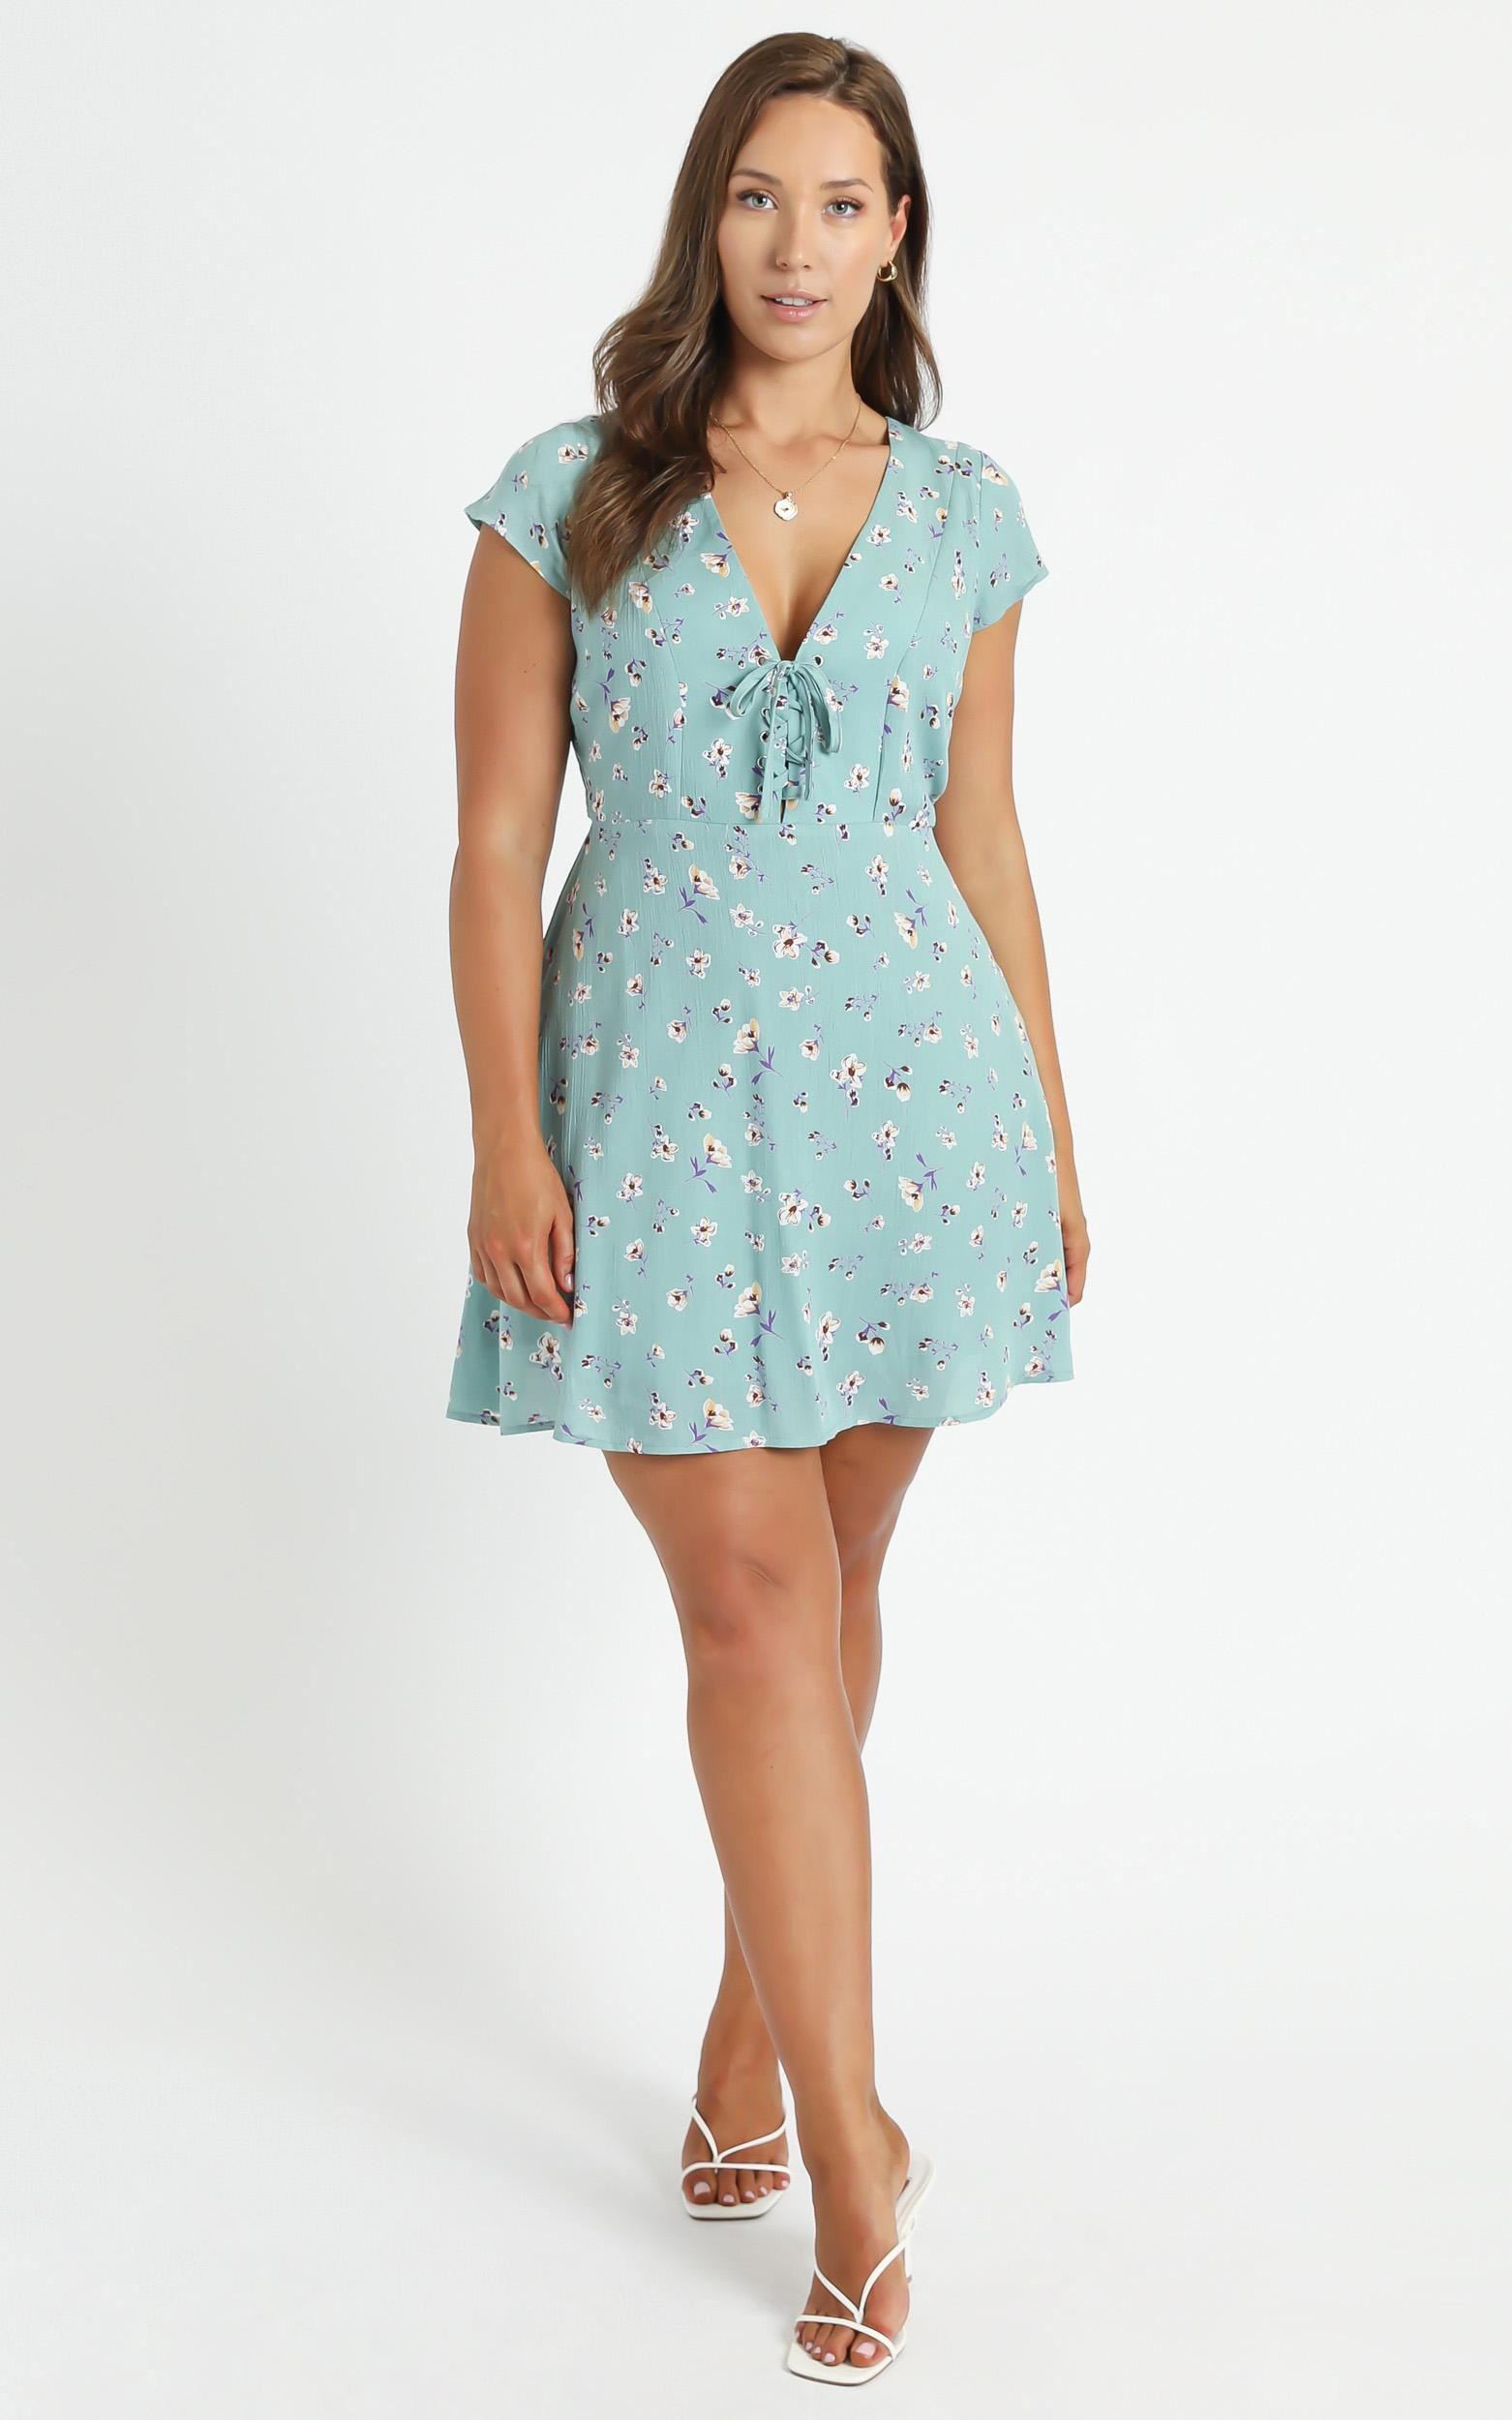 Secret Cure dress in Mint Floral  - 20 (XXXXL), Green, hi-res image number null